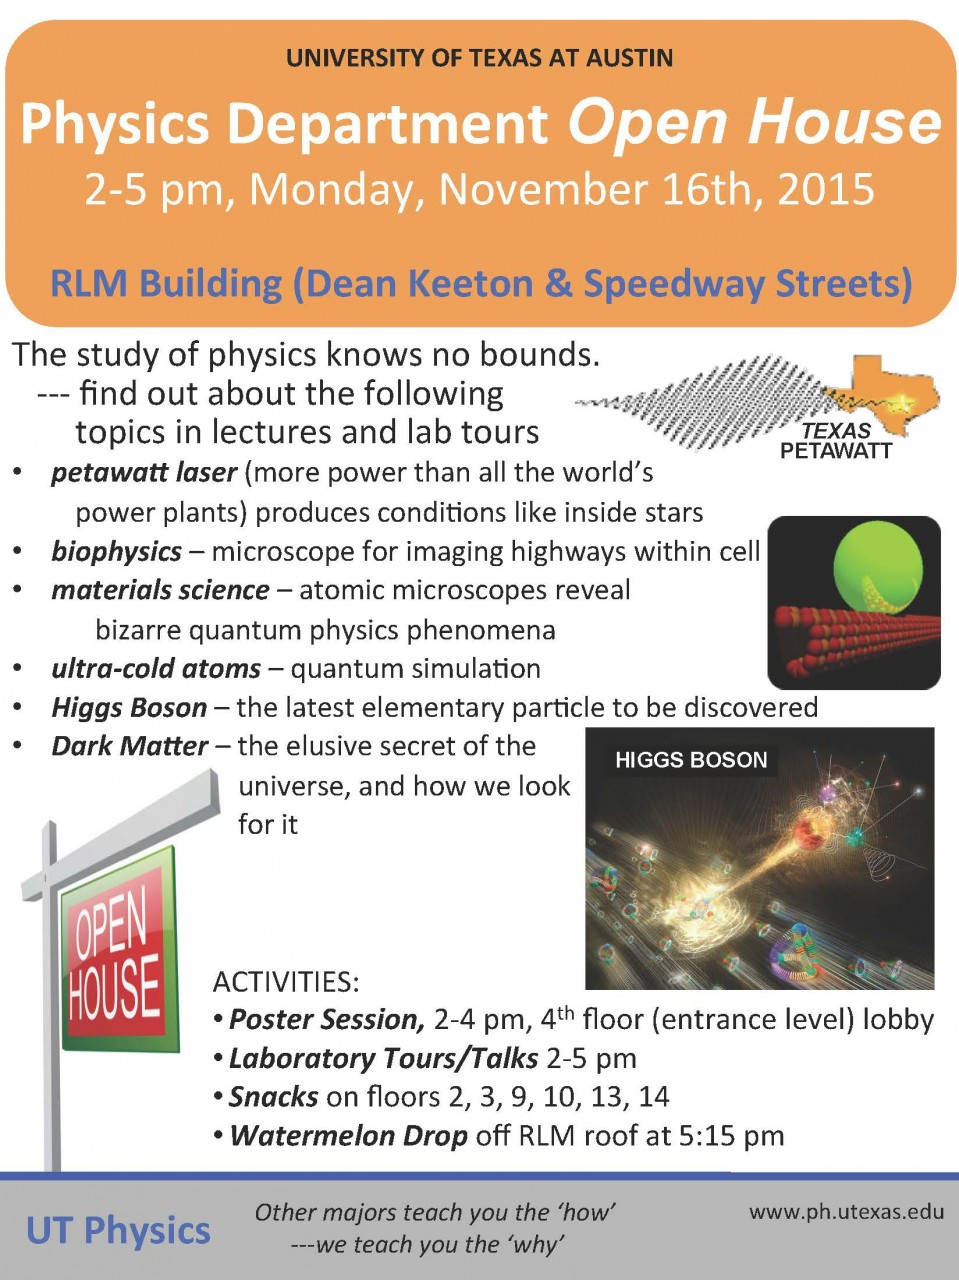 PHYSICS DEPARTMENT OPEN HOUSE